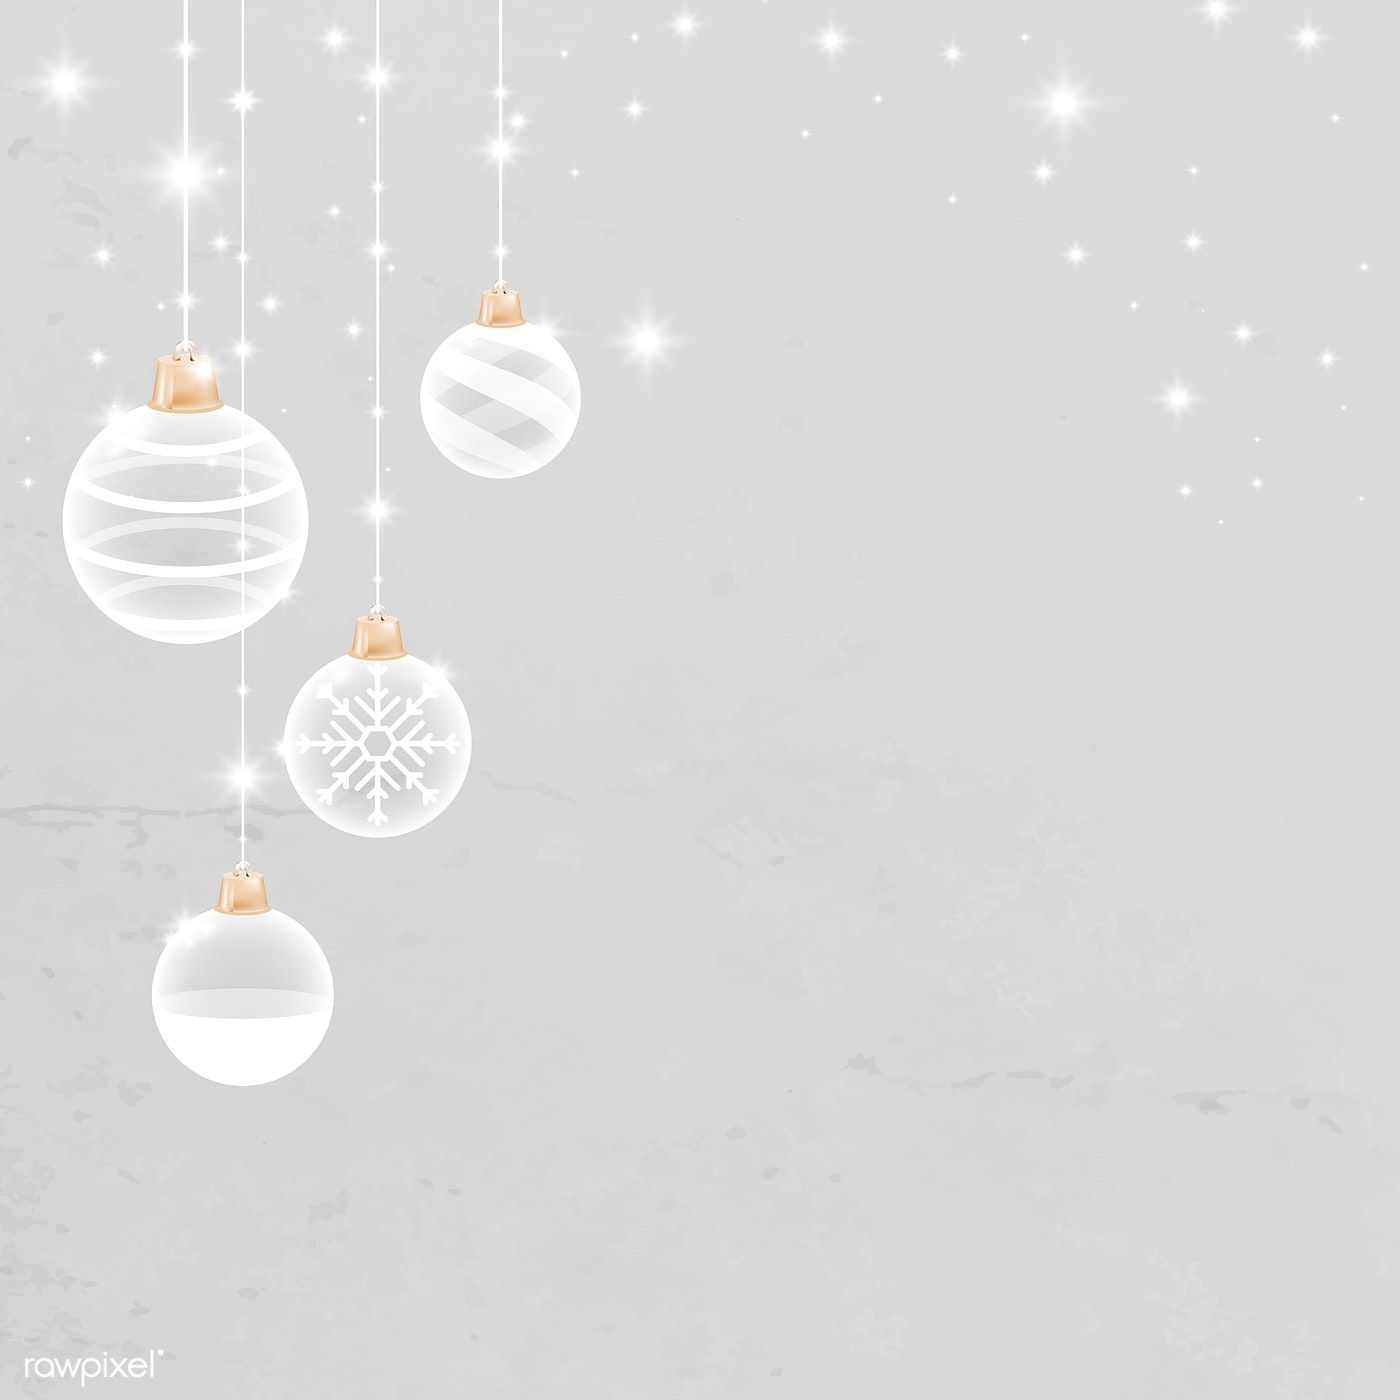 Download Premium Vector Of White Christmas Bauble Patterned On Gray Christmas Background Images Christmas Card Images Cute Christmas Backgrounds